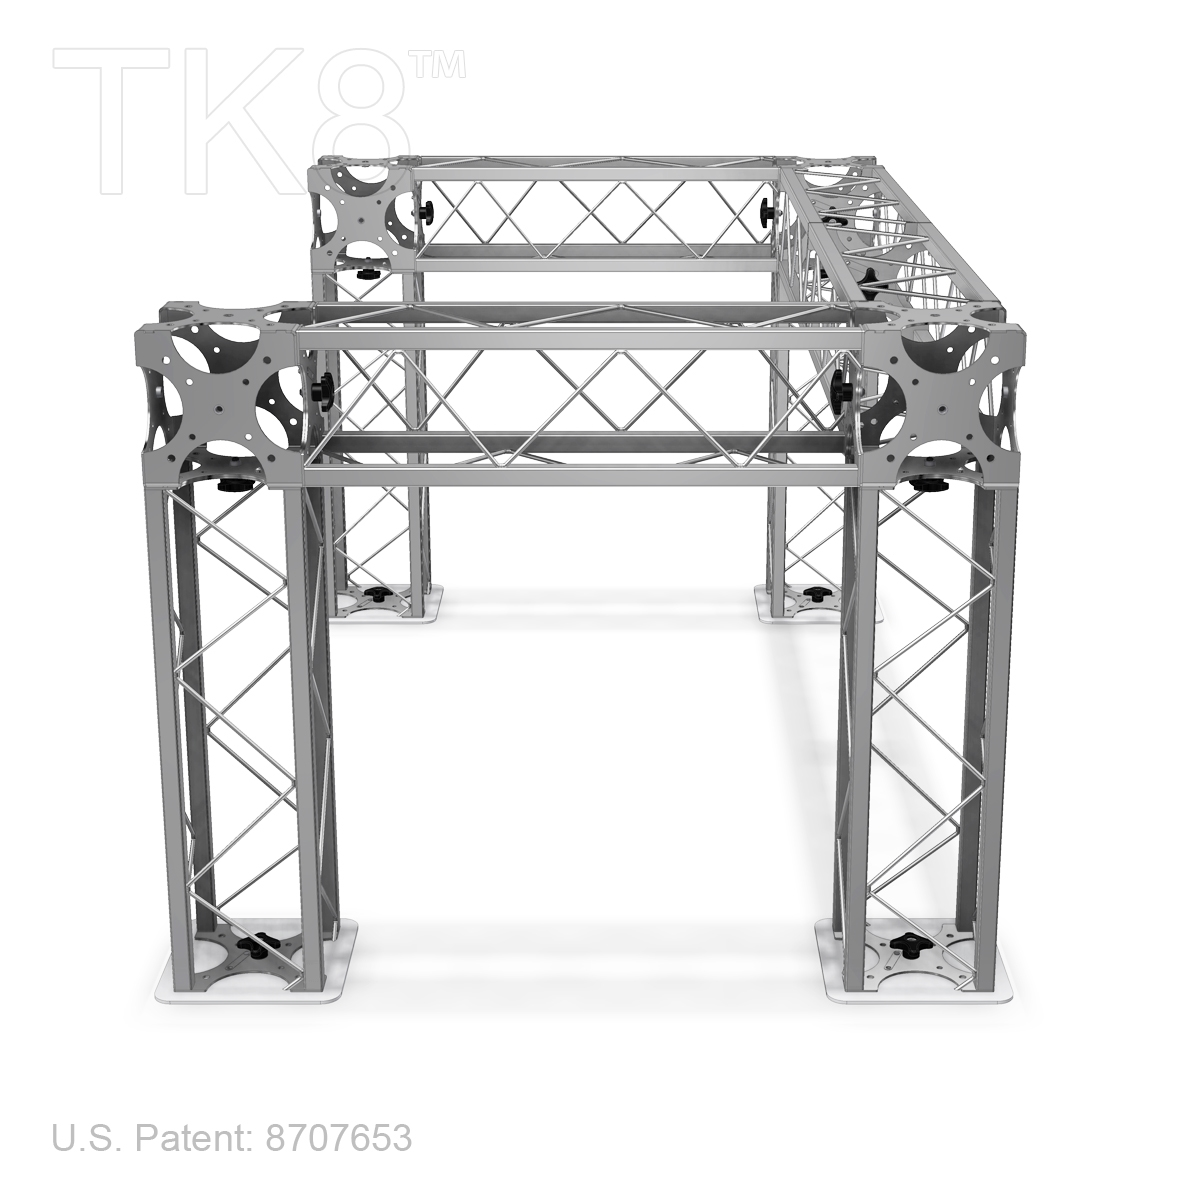 Dj Four 4ft X 6ft Tk8 Aluminum Box Truss Dj Stand Frame